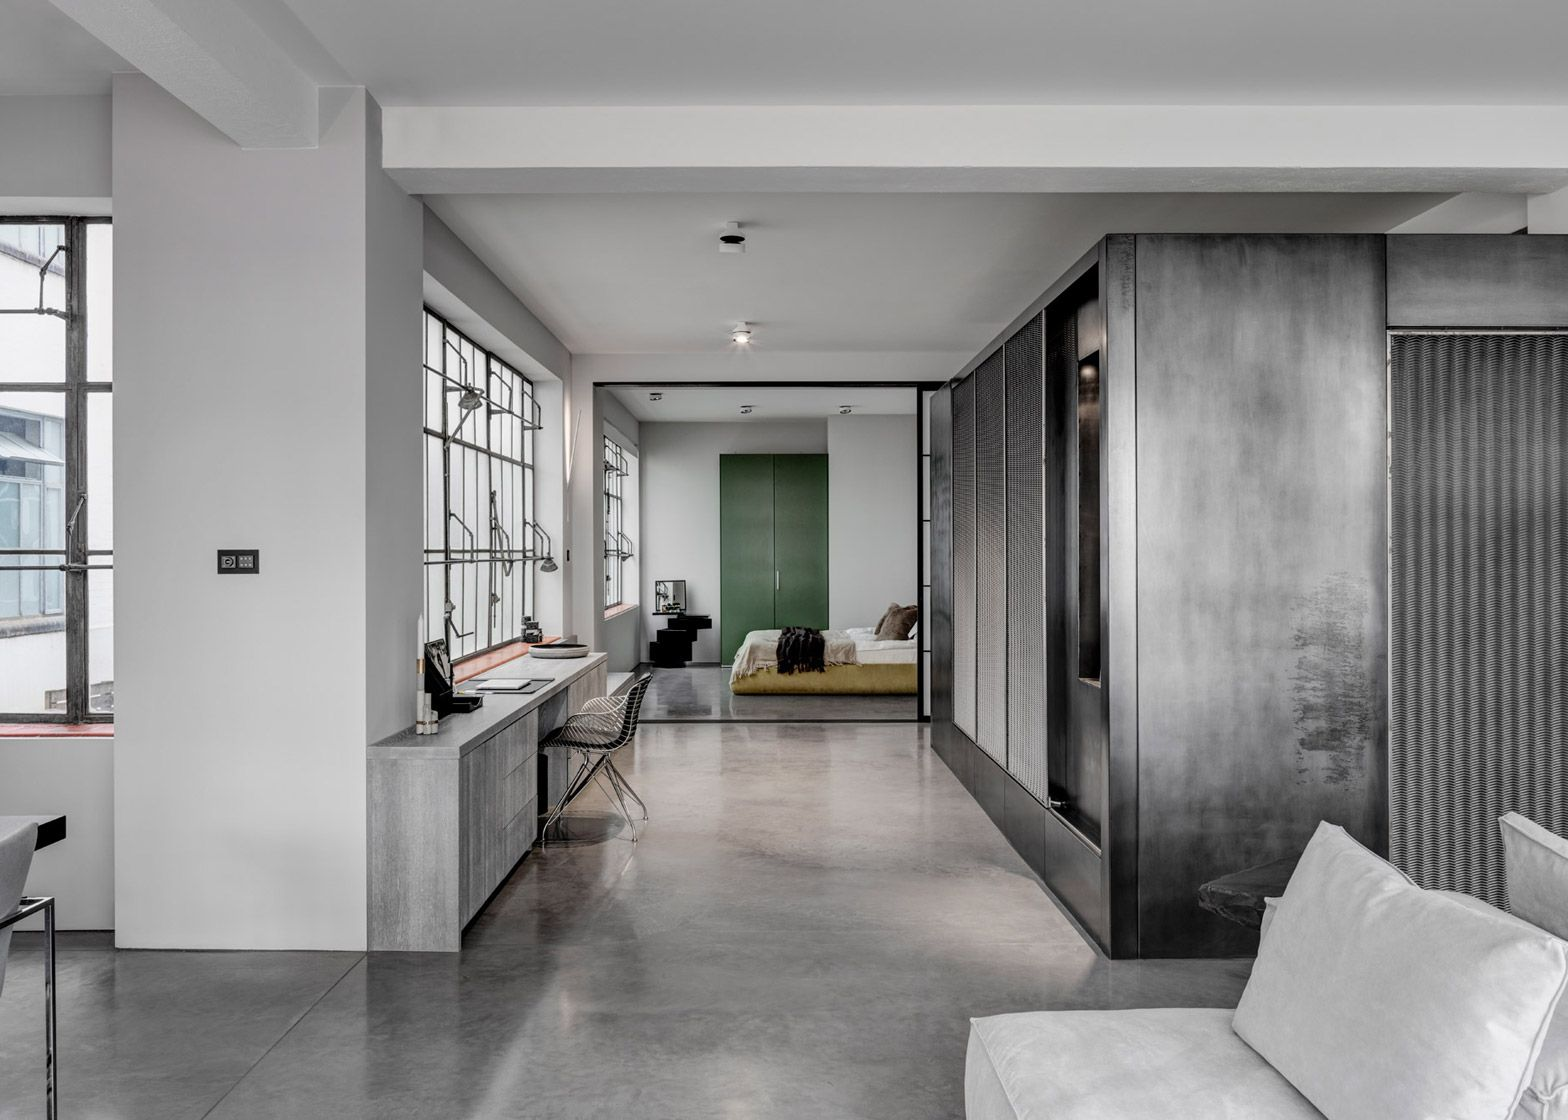 APA has transformed a London warehouse space into an apartment for two film directors, adding a raw steel volume that houses a movie archive and bathroom